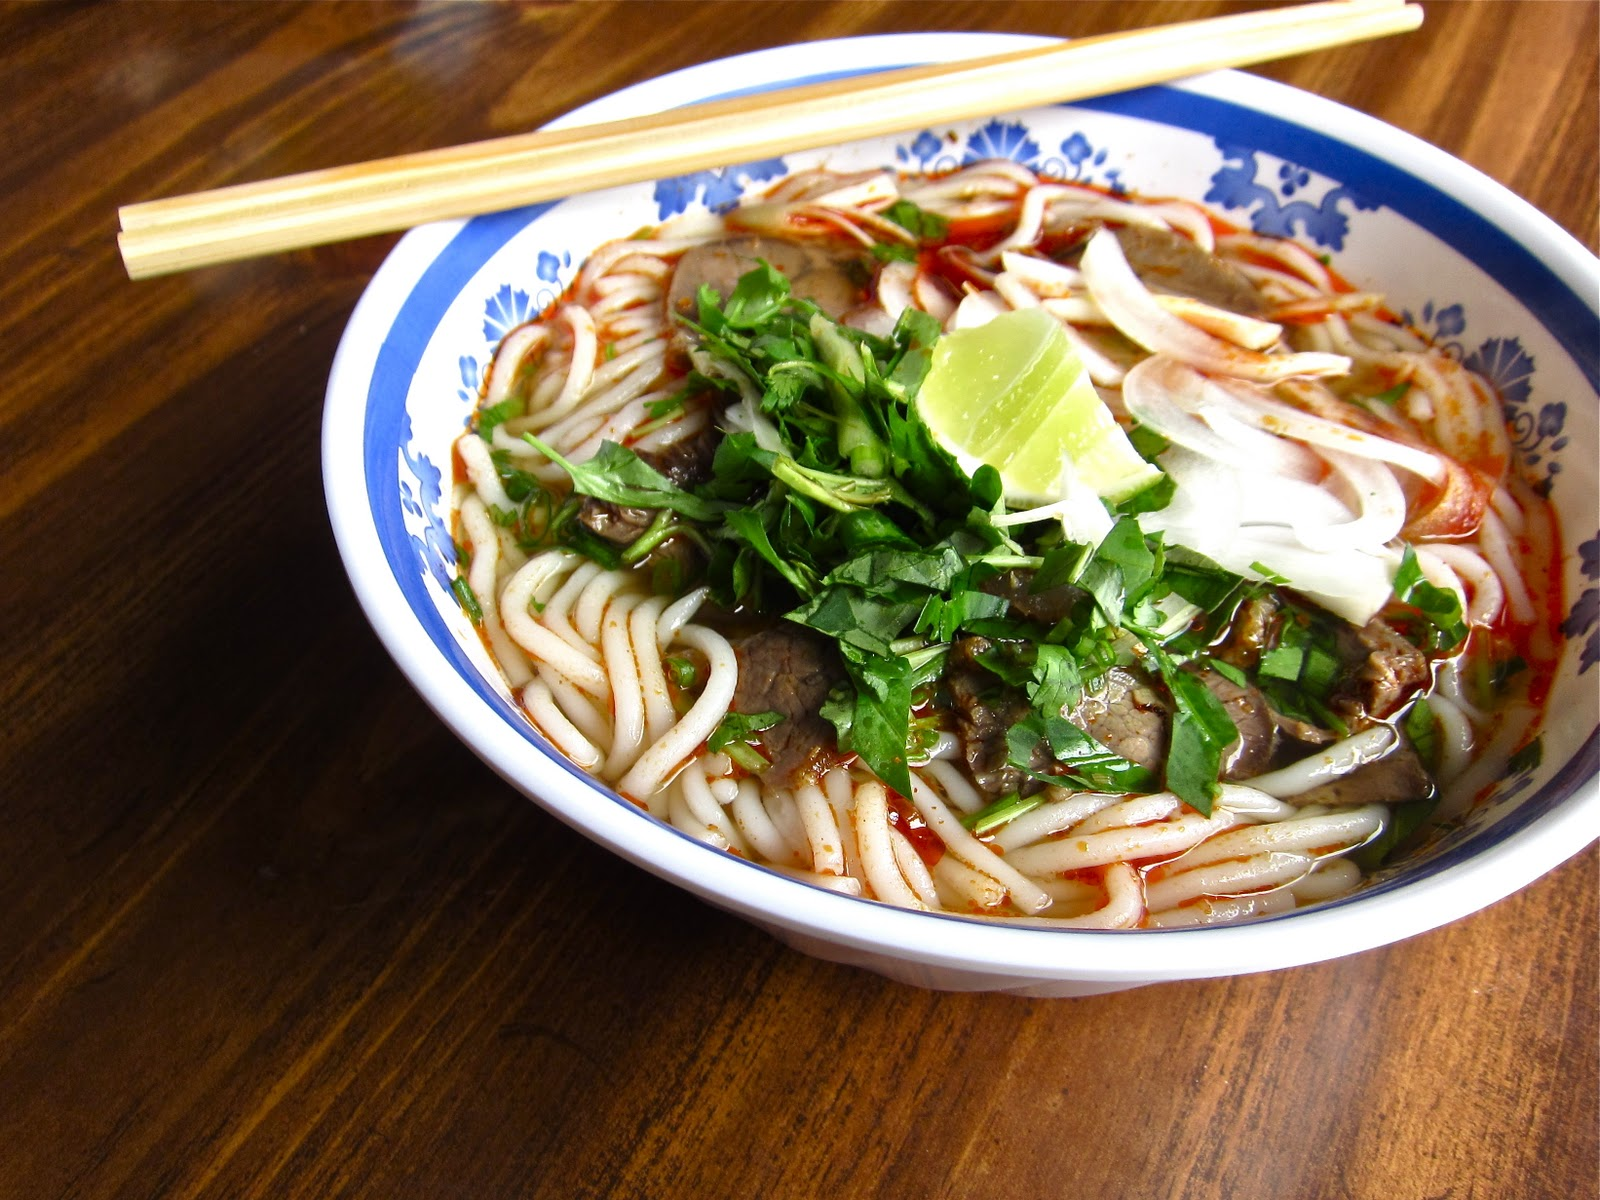 Titillating Delights: Bun Bo Hue (Beef and lemongrass noodle soup)